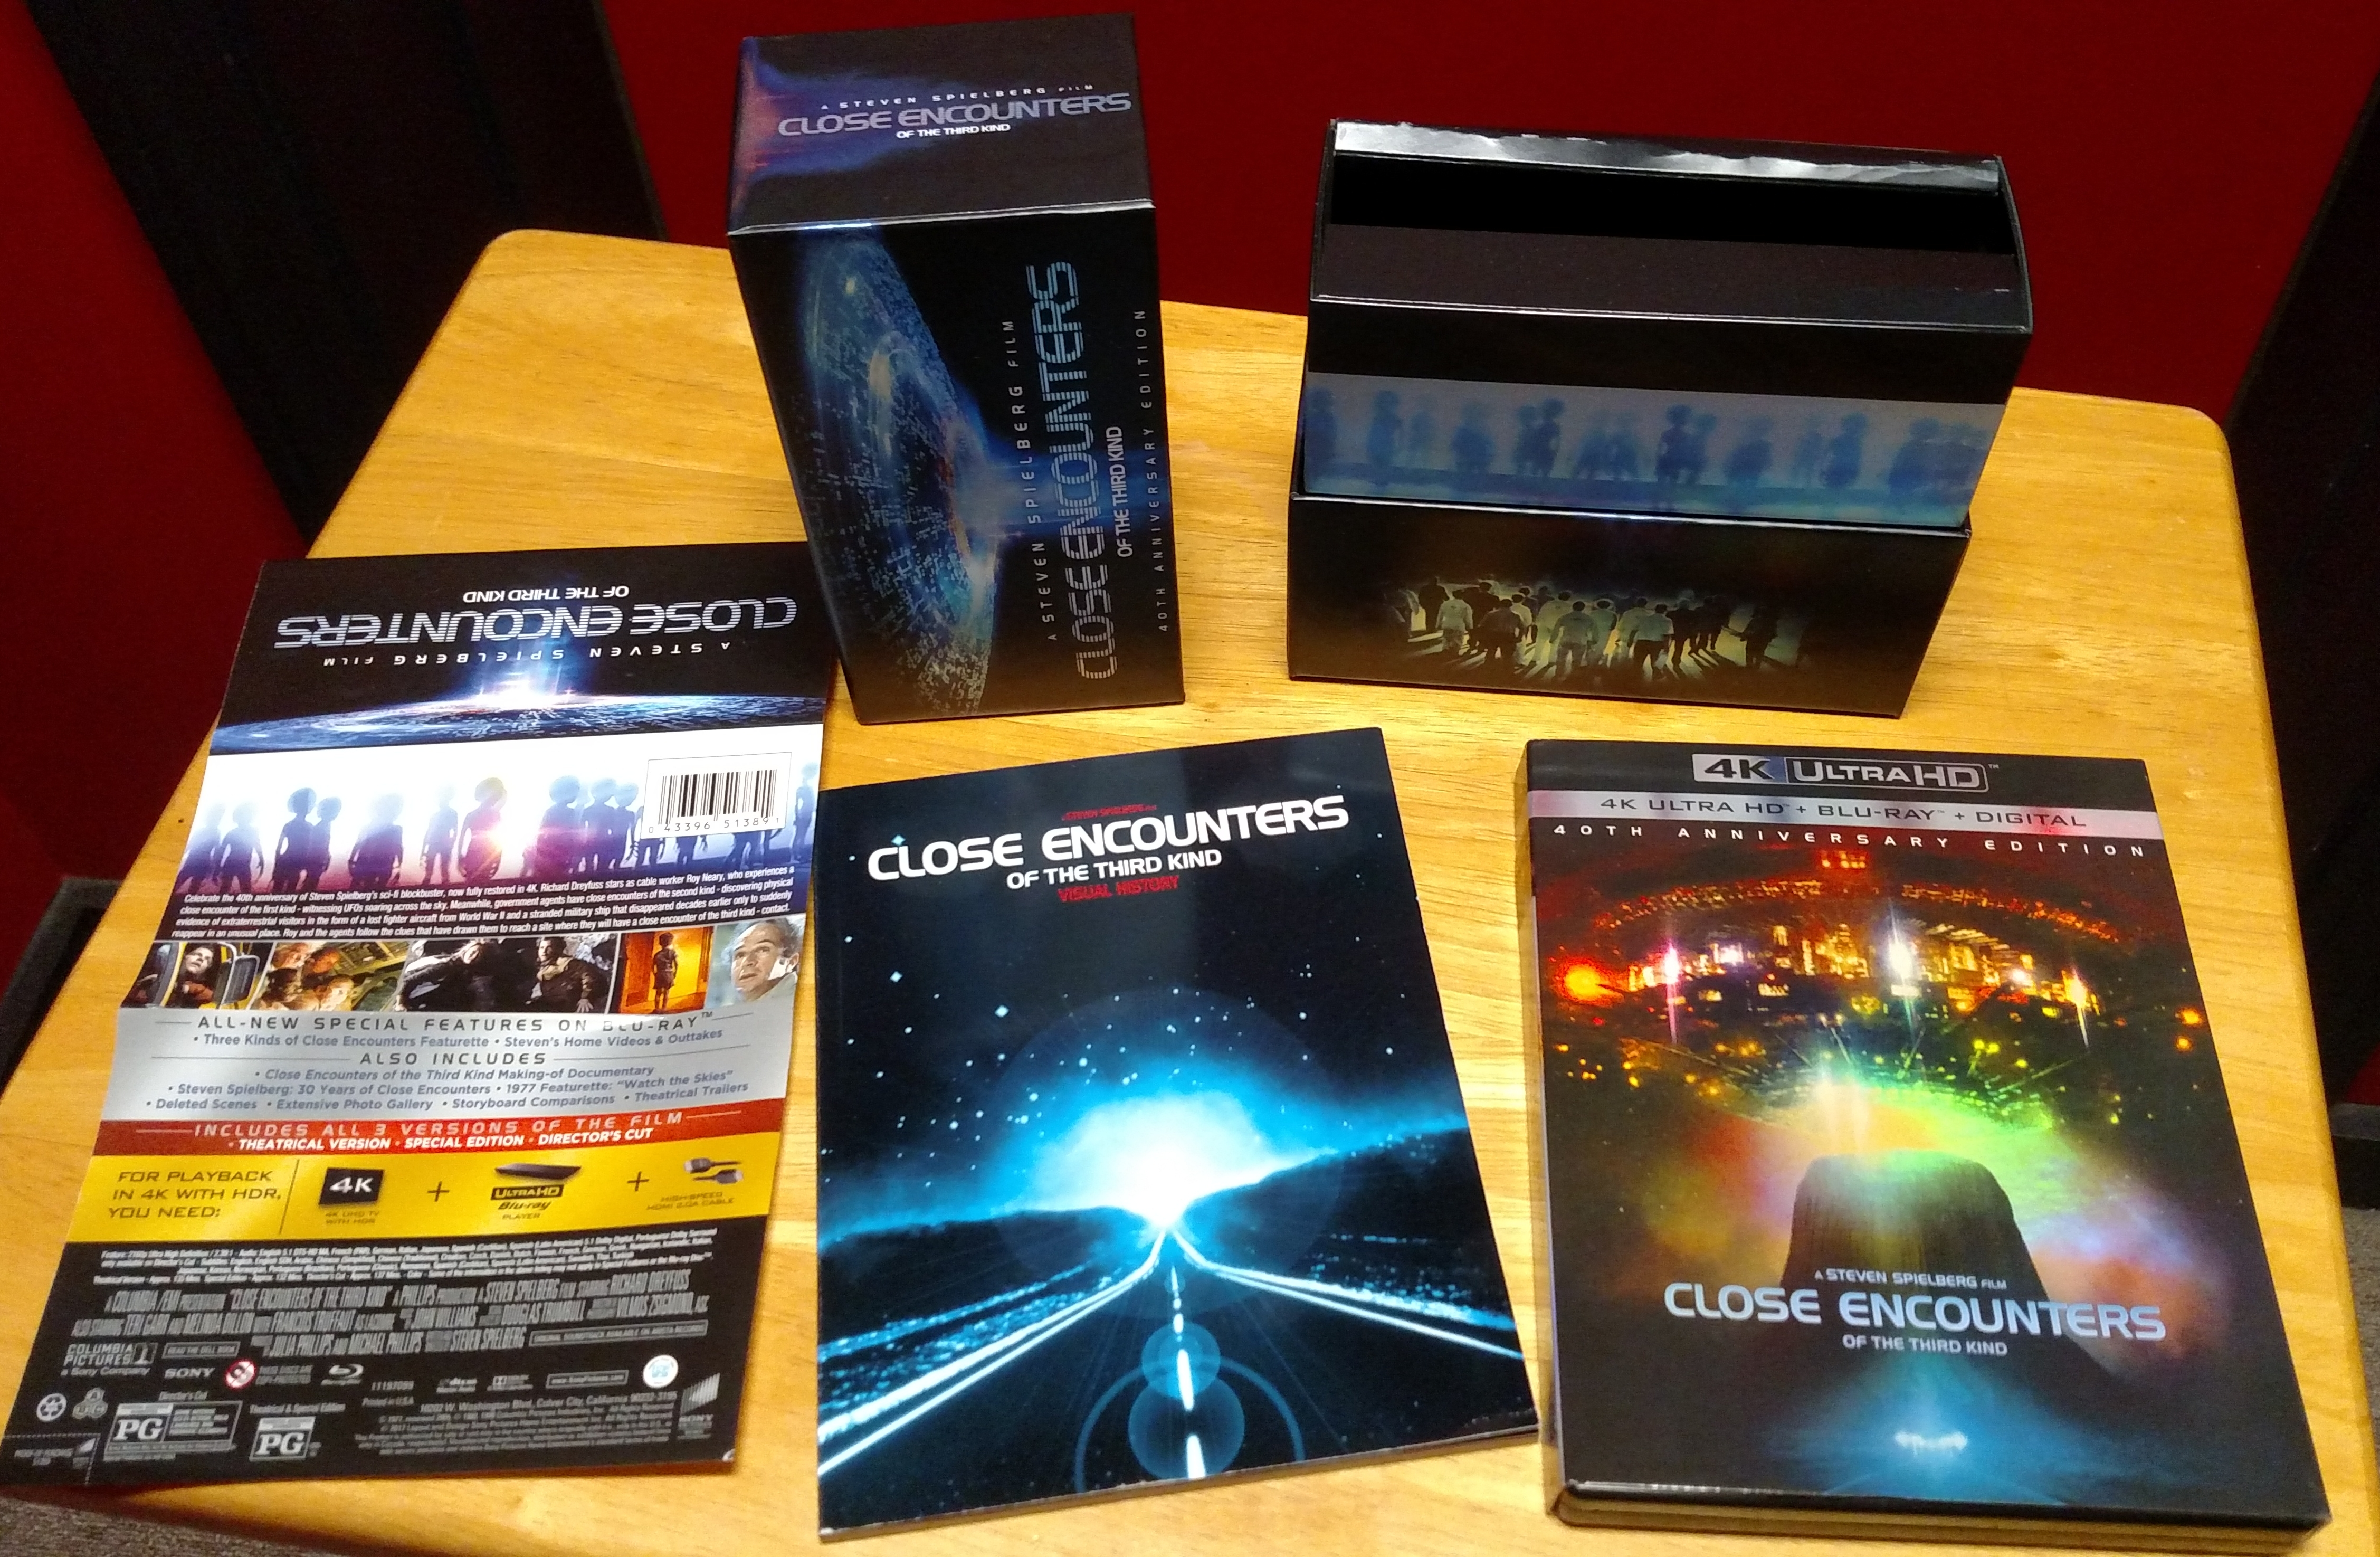 Close Encounters Gift Set - Contents